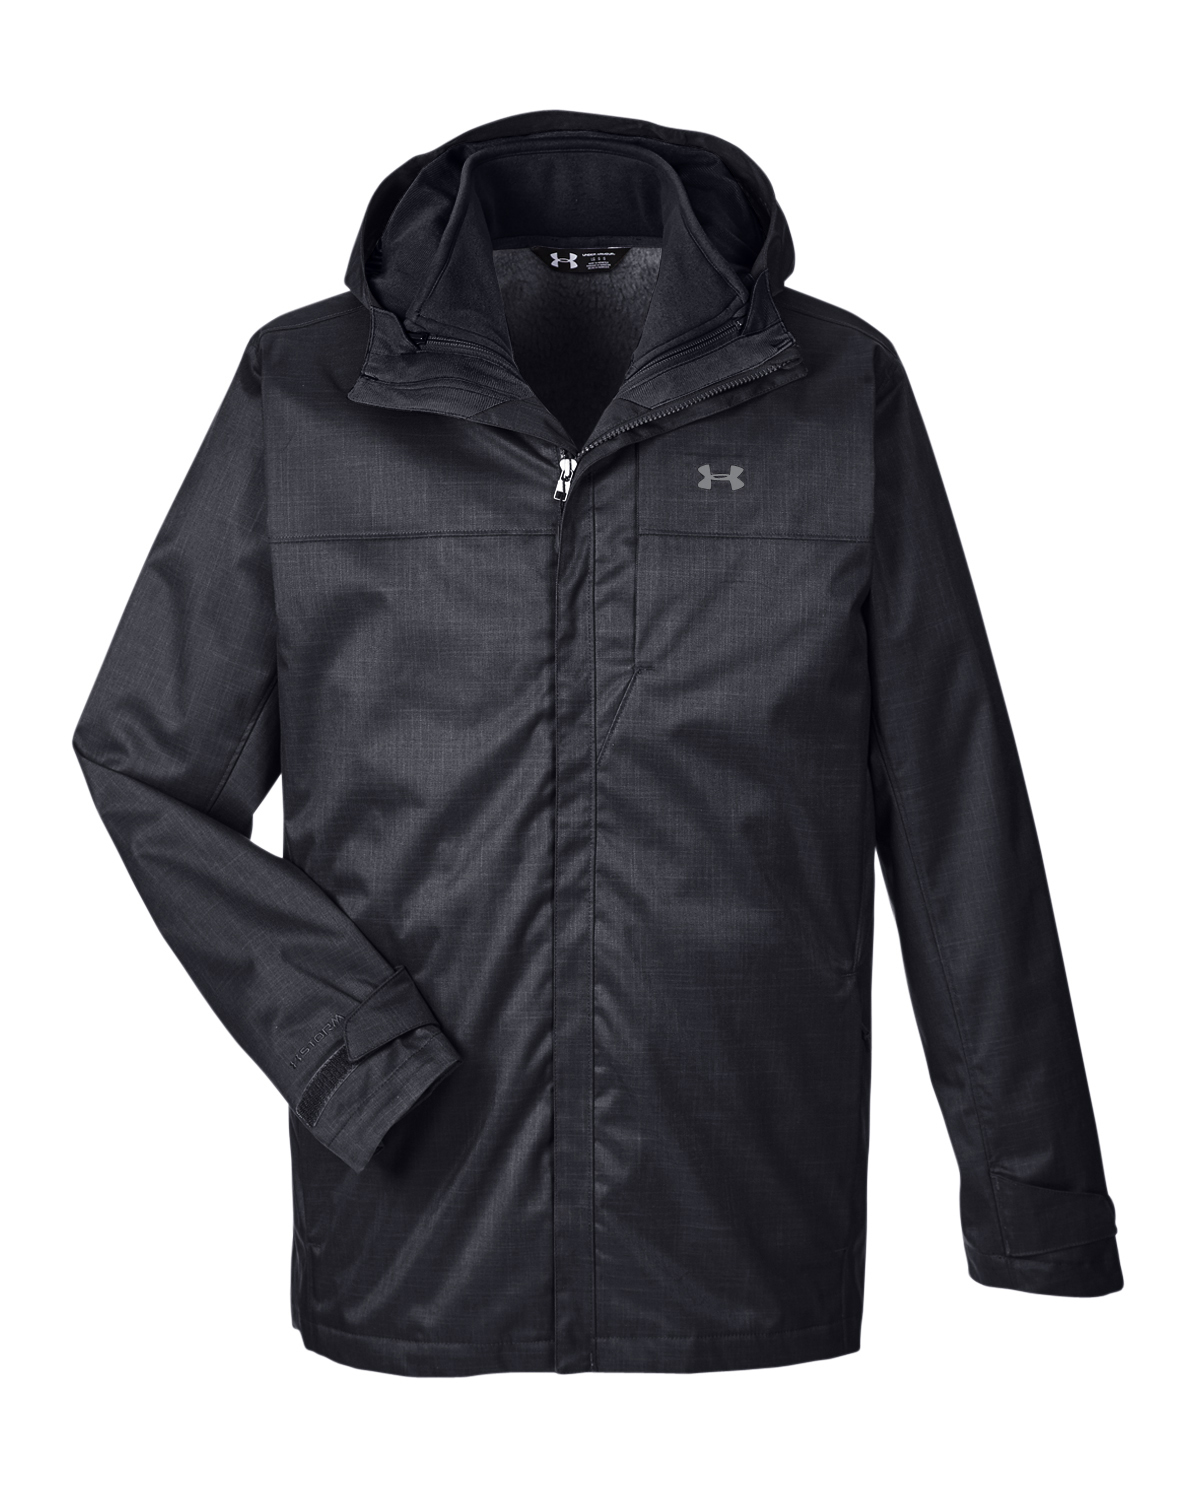 Under Armour 1300663 - Men's UA Porter II 3-In-1 Jacket